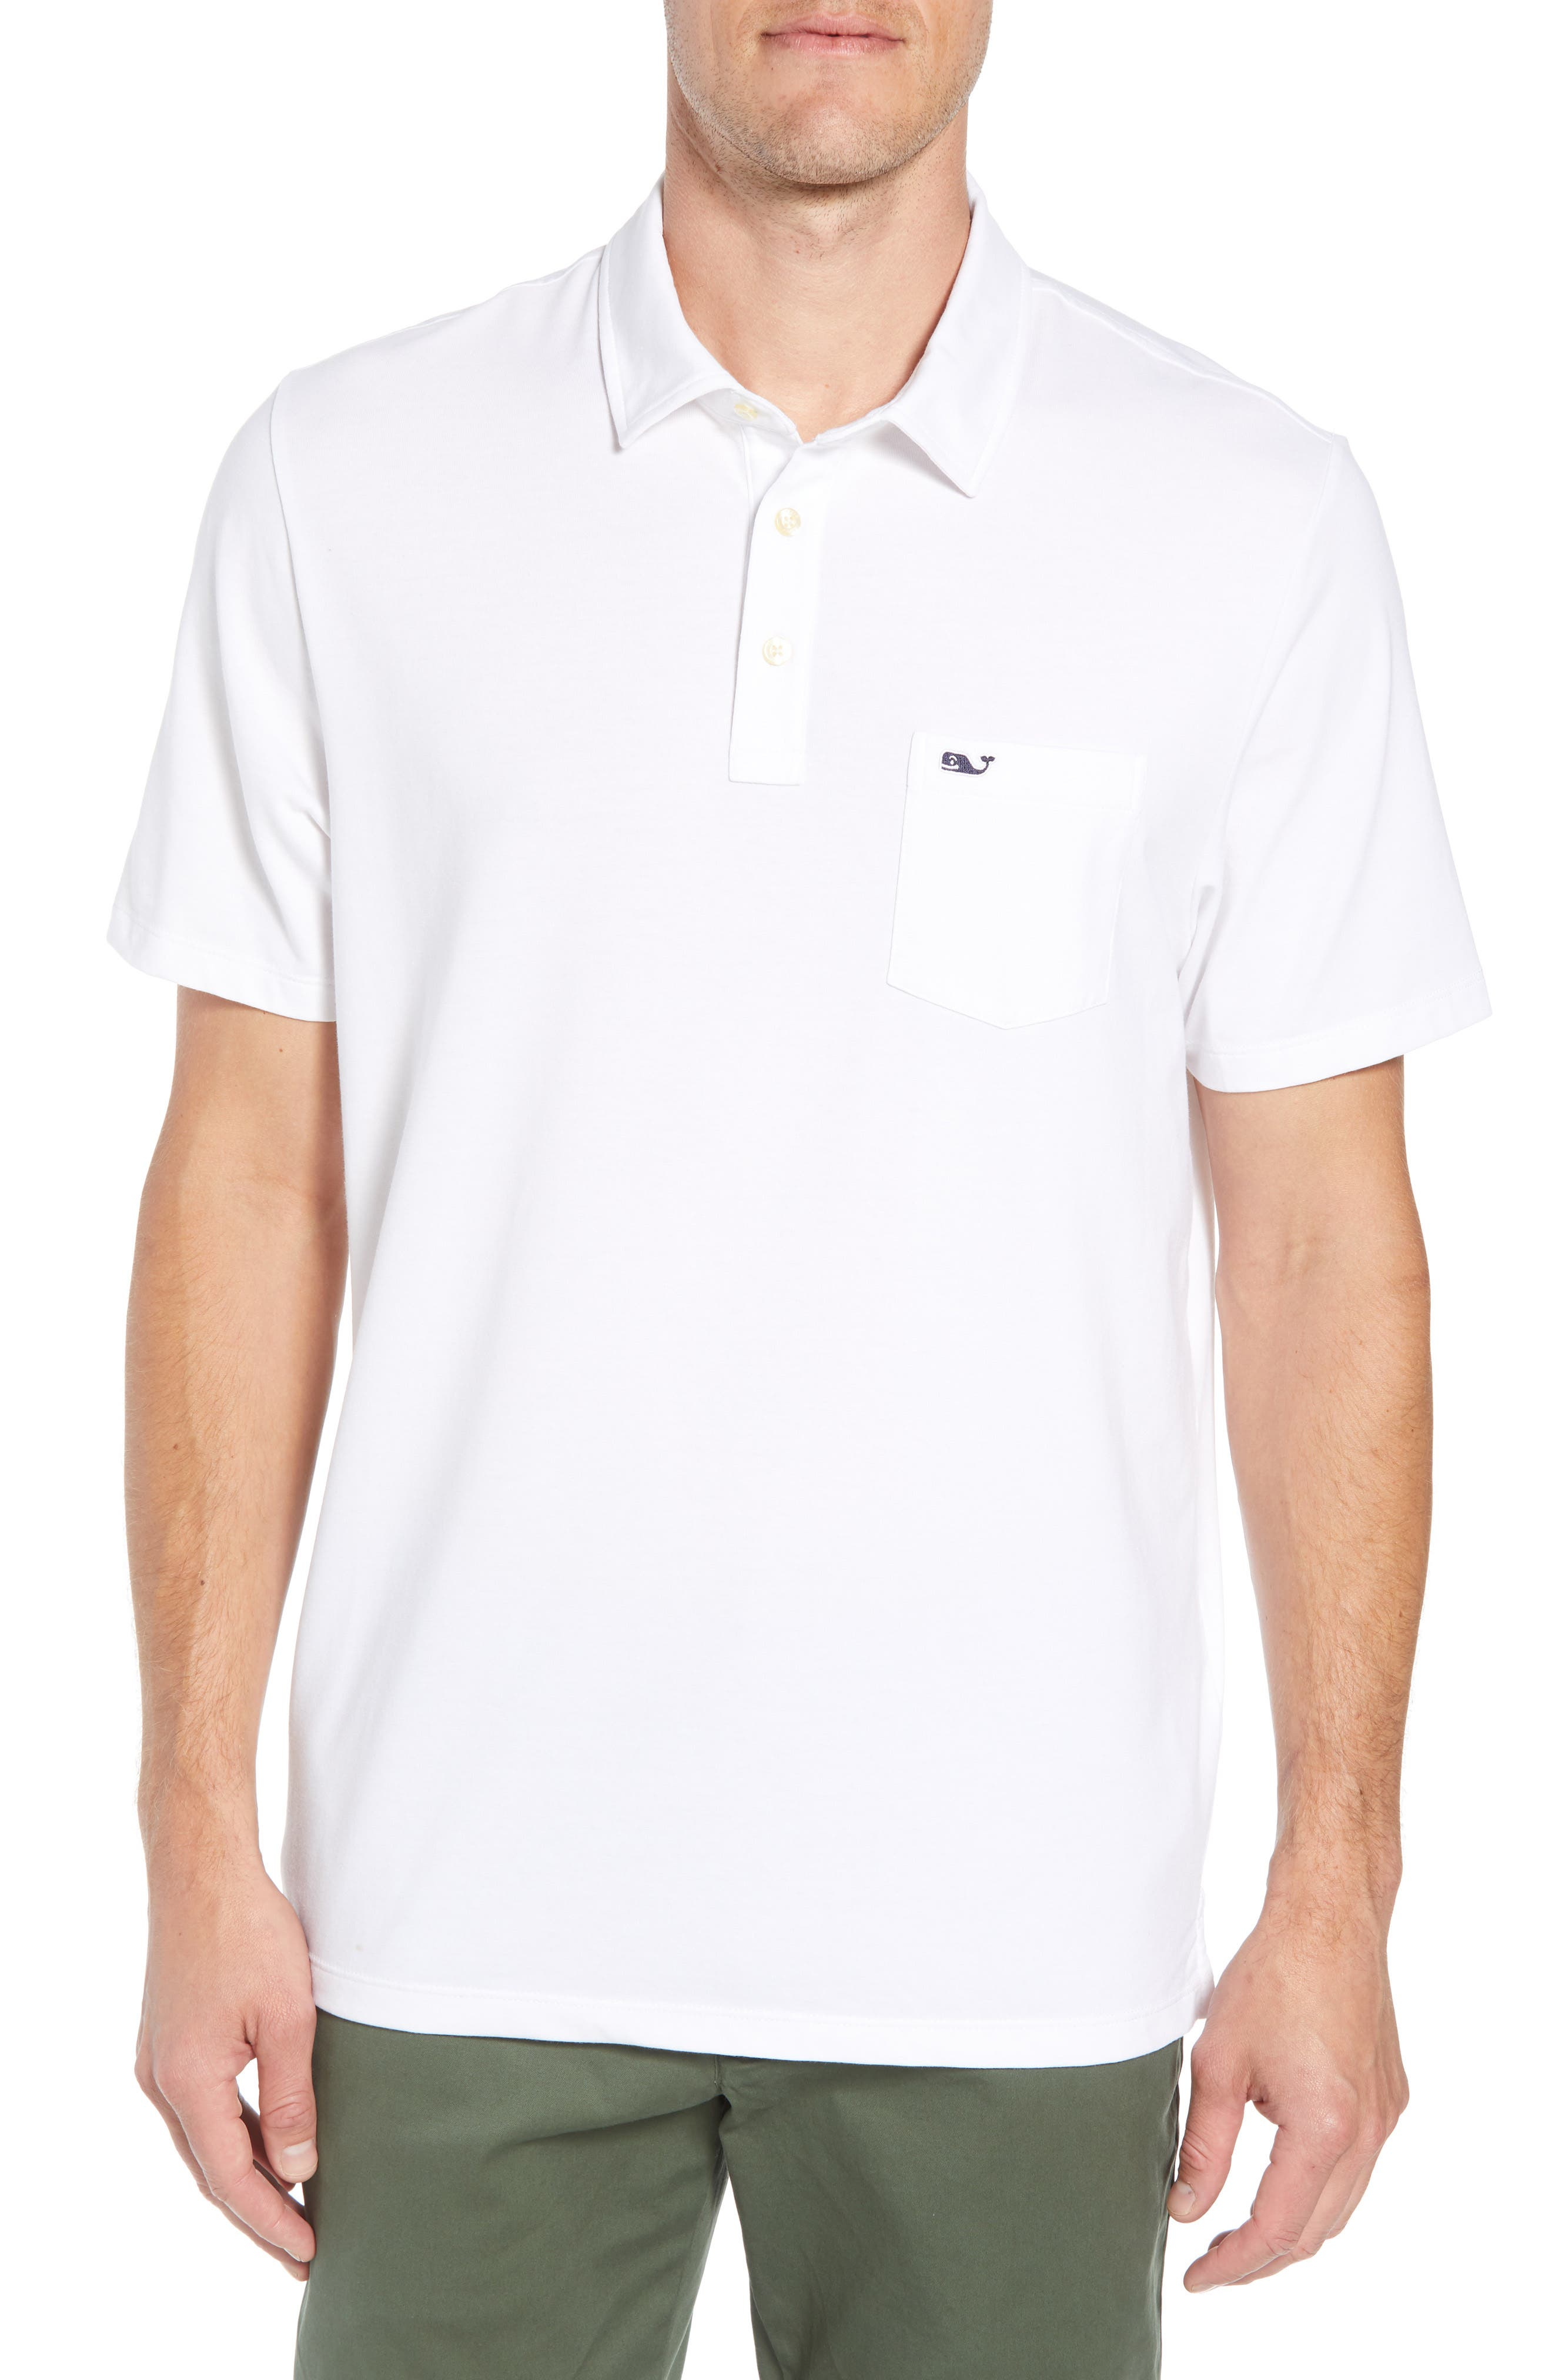 Vineyard Vines Shirts EDGARTOWN POLO SHIRT